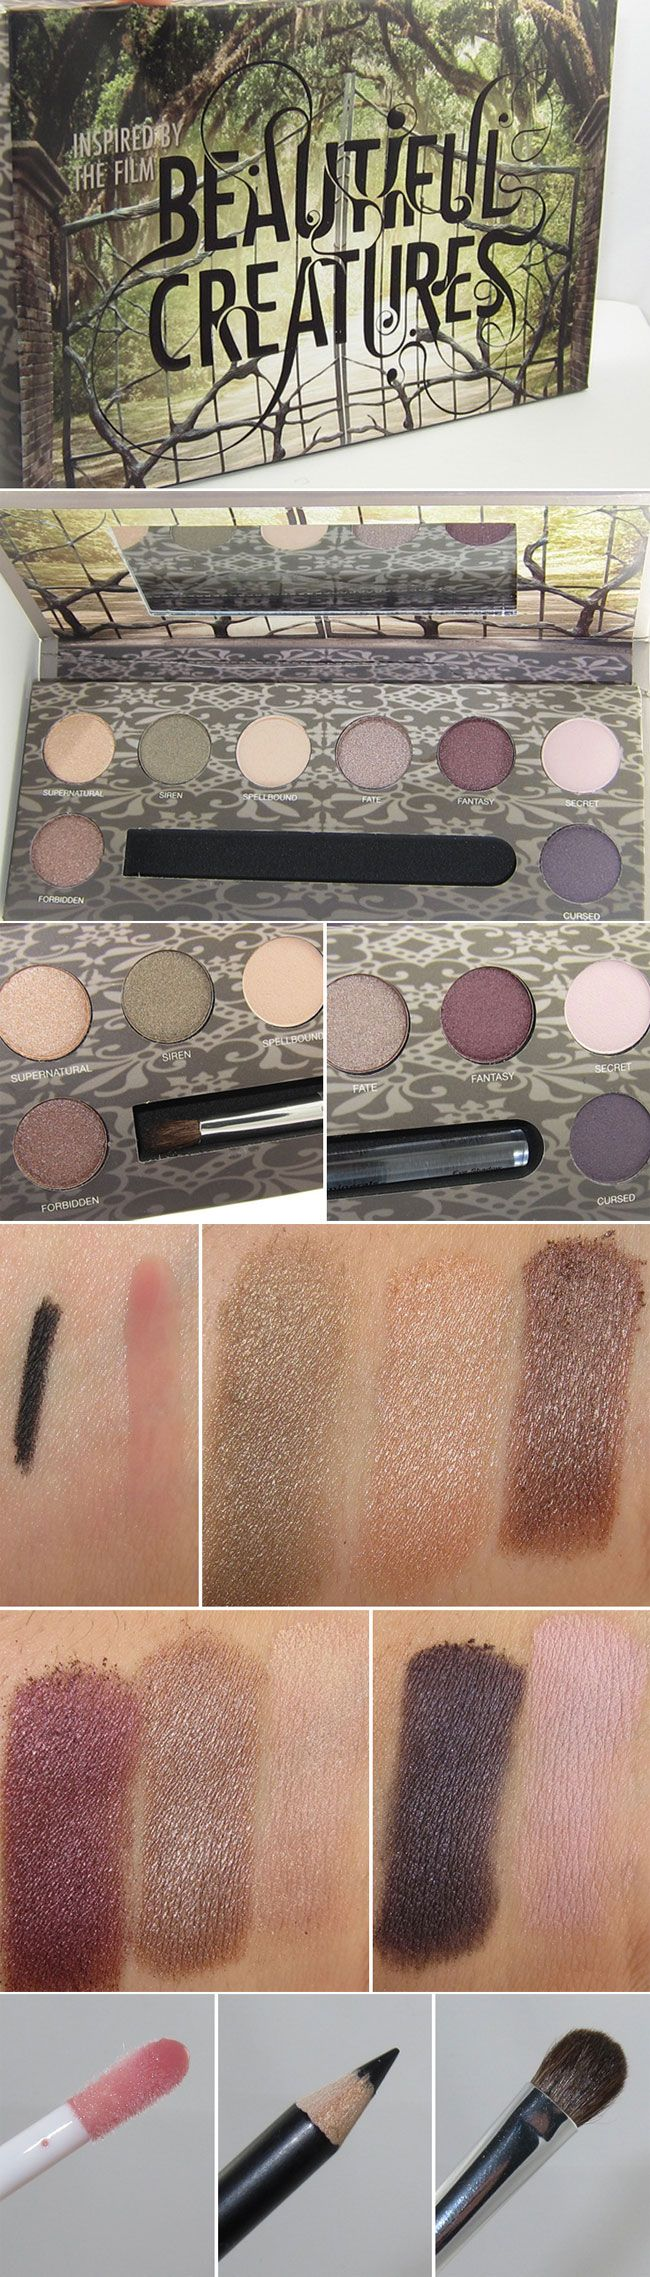 WANT IT :: #ULTA :: Pur Minerals Beautiful Creatures Palette, Limited Edition :: $39   ulta.com :: 8 shadows (3 matte, 5 shimmer in taupe, nude, moss, neutral, mushroom, plum, pink & violet), lipgloss, black eyeliner pencil & a brush (a good one!) :: Smooth & velvety shadows (on par w/ Stila but w/o the frostiness); blend like butter w/ great excellent color payoff. Gloss is sheer w/ little pigment & a glassy feel. Eyeliner works well: tug-free app & great pigment.   #musingsofamuse